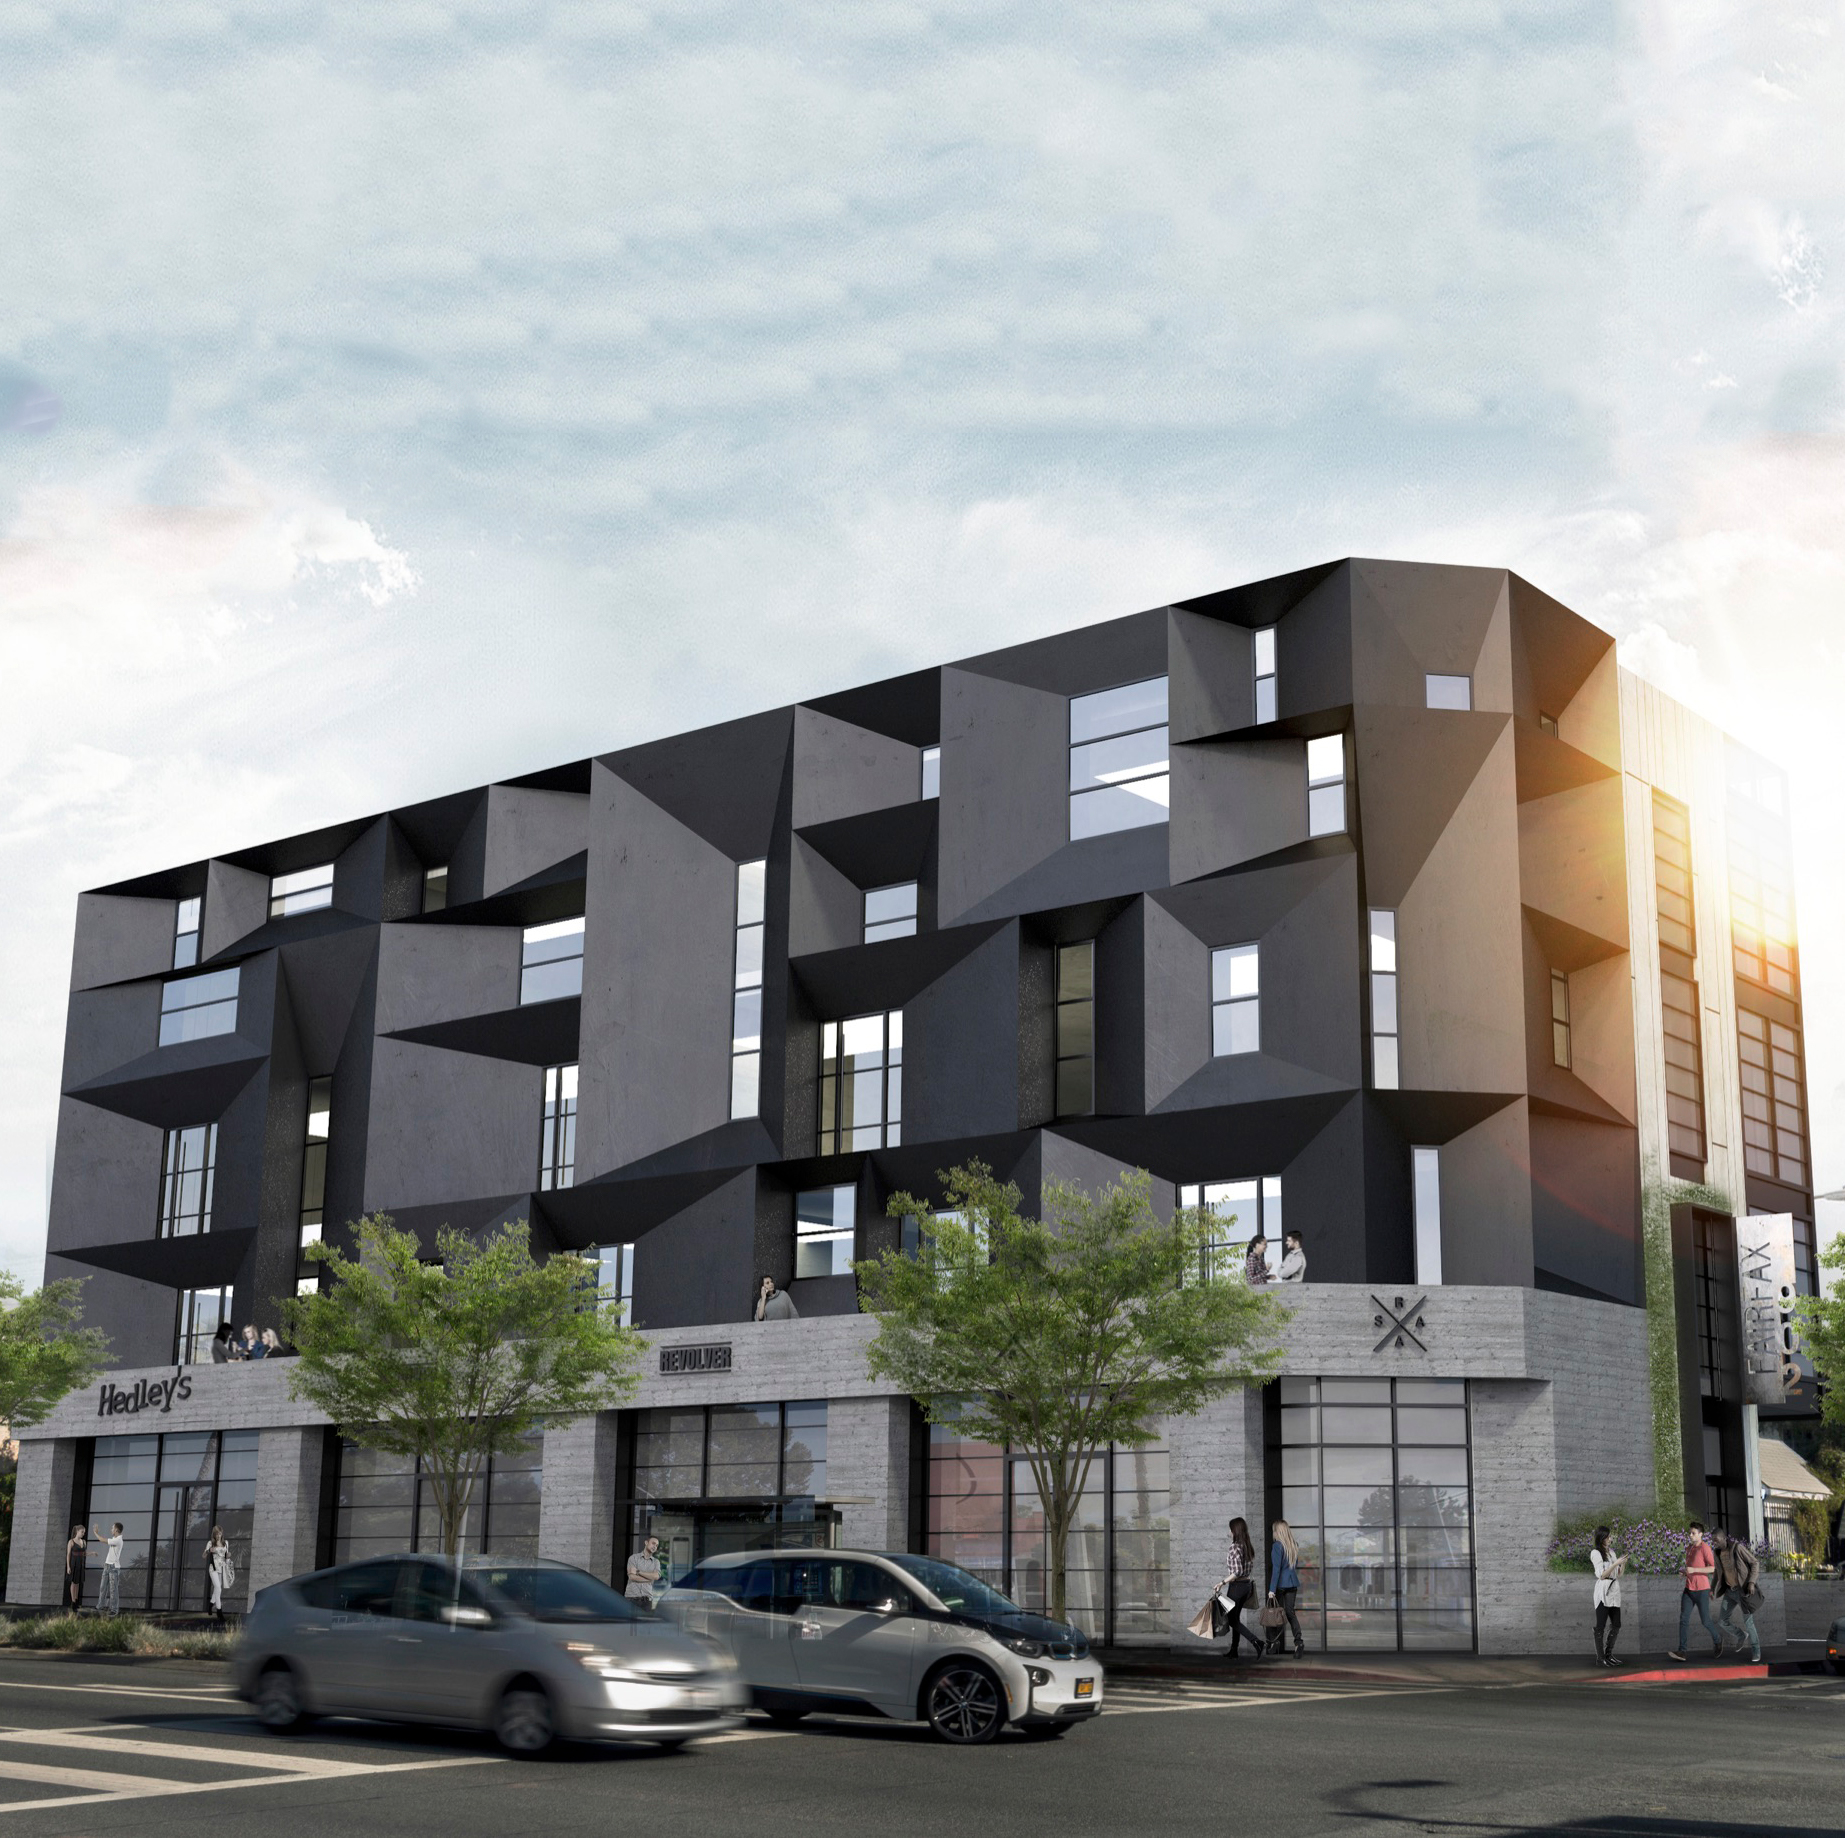 - Final Facade based on neighborhood feedback  - Neighborhood serving commercial space on ground floor (small cafes & retail)